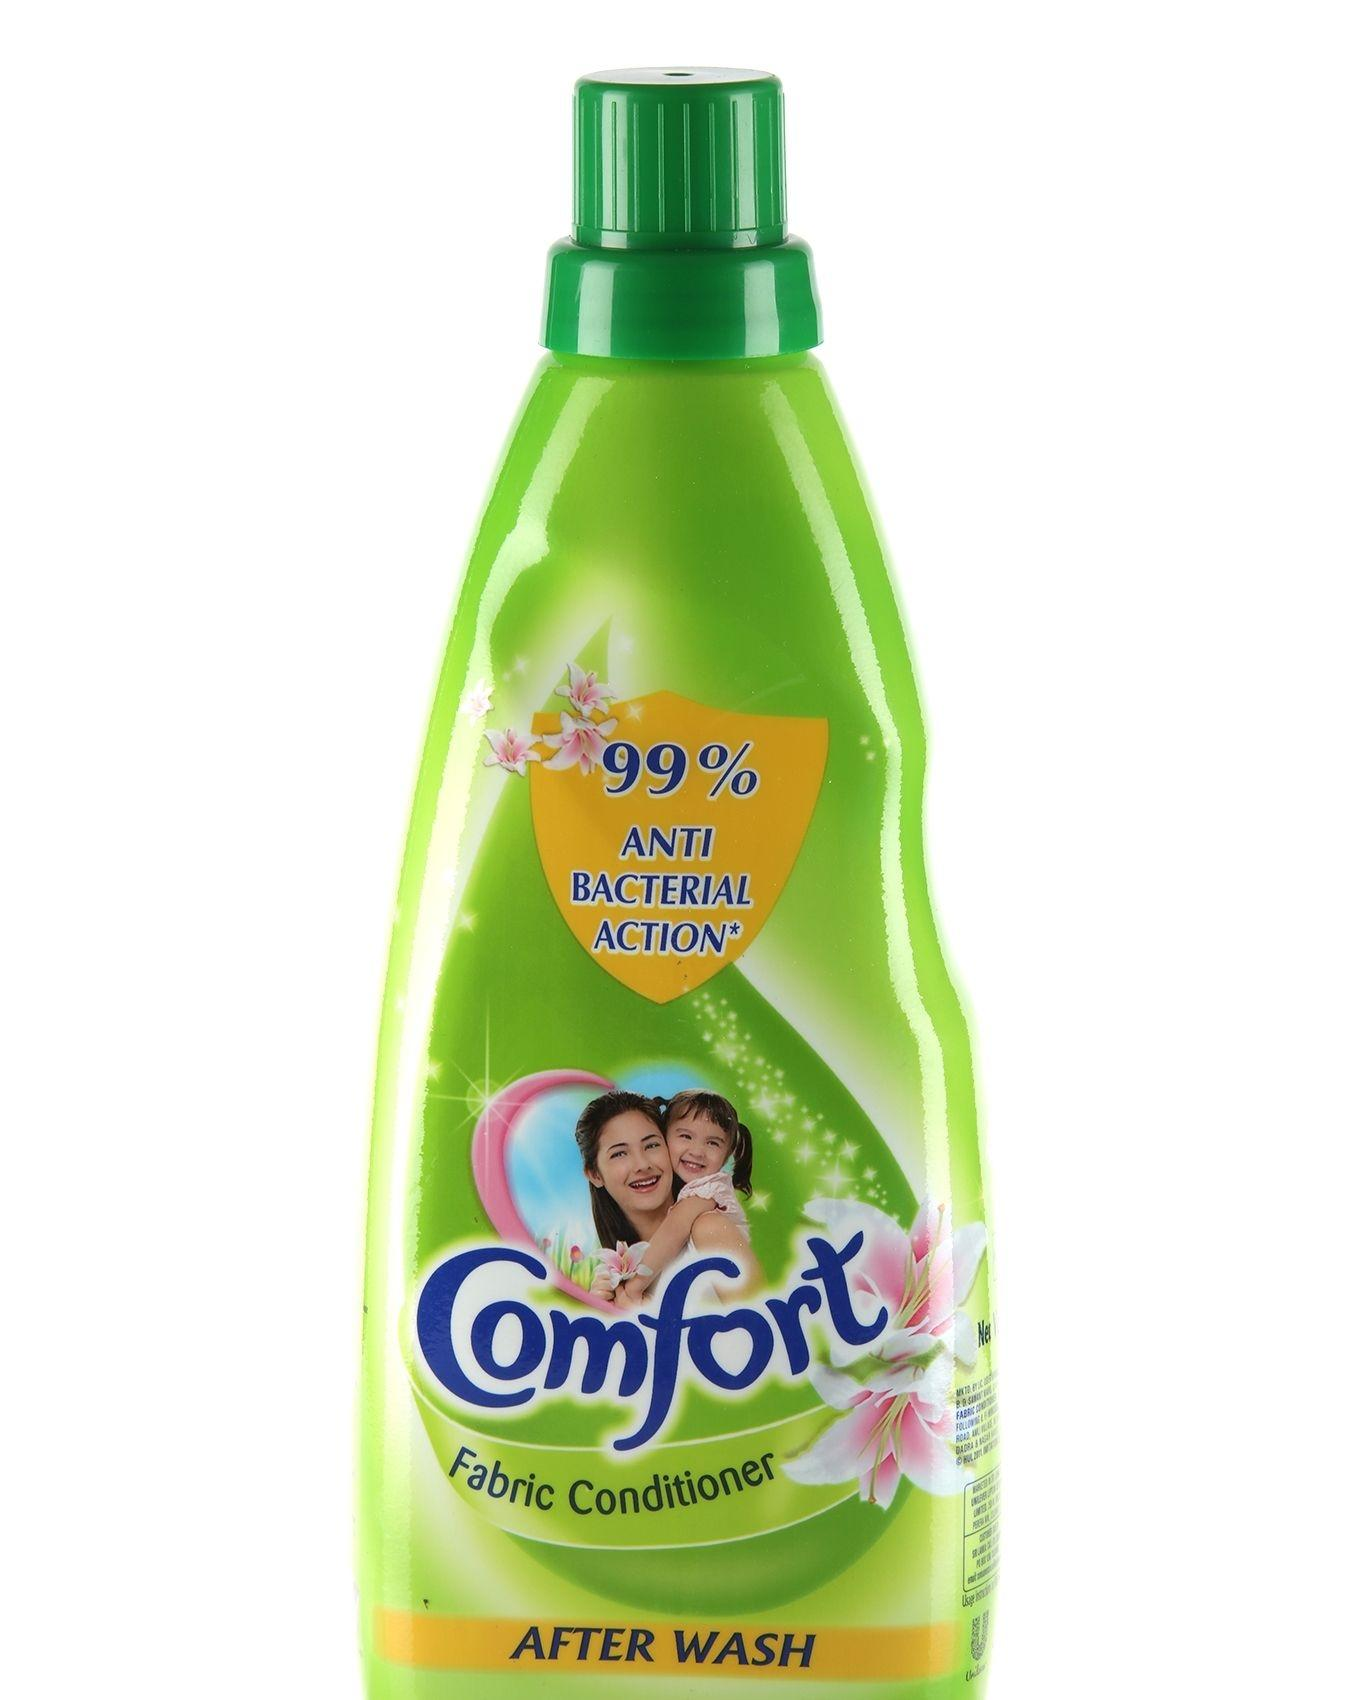 Anti Bacterial Action Fabric Conditioner 200ml